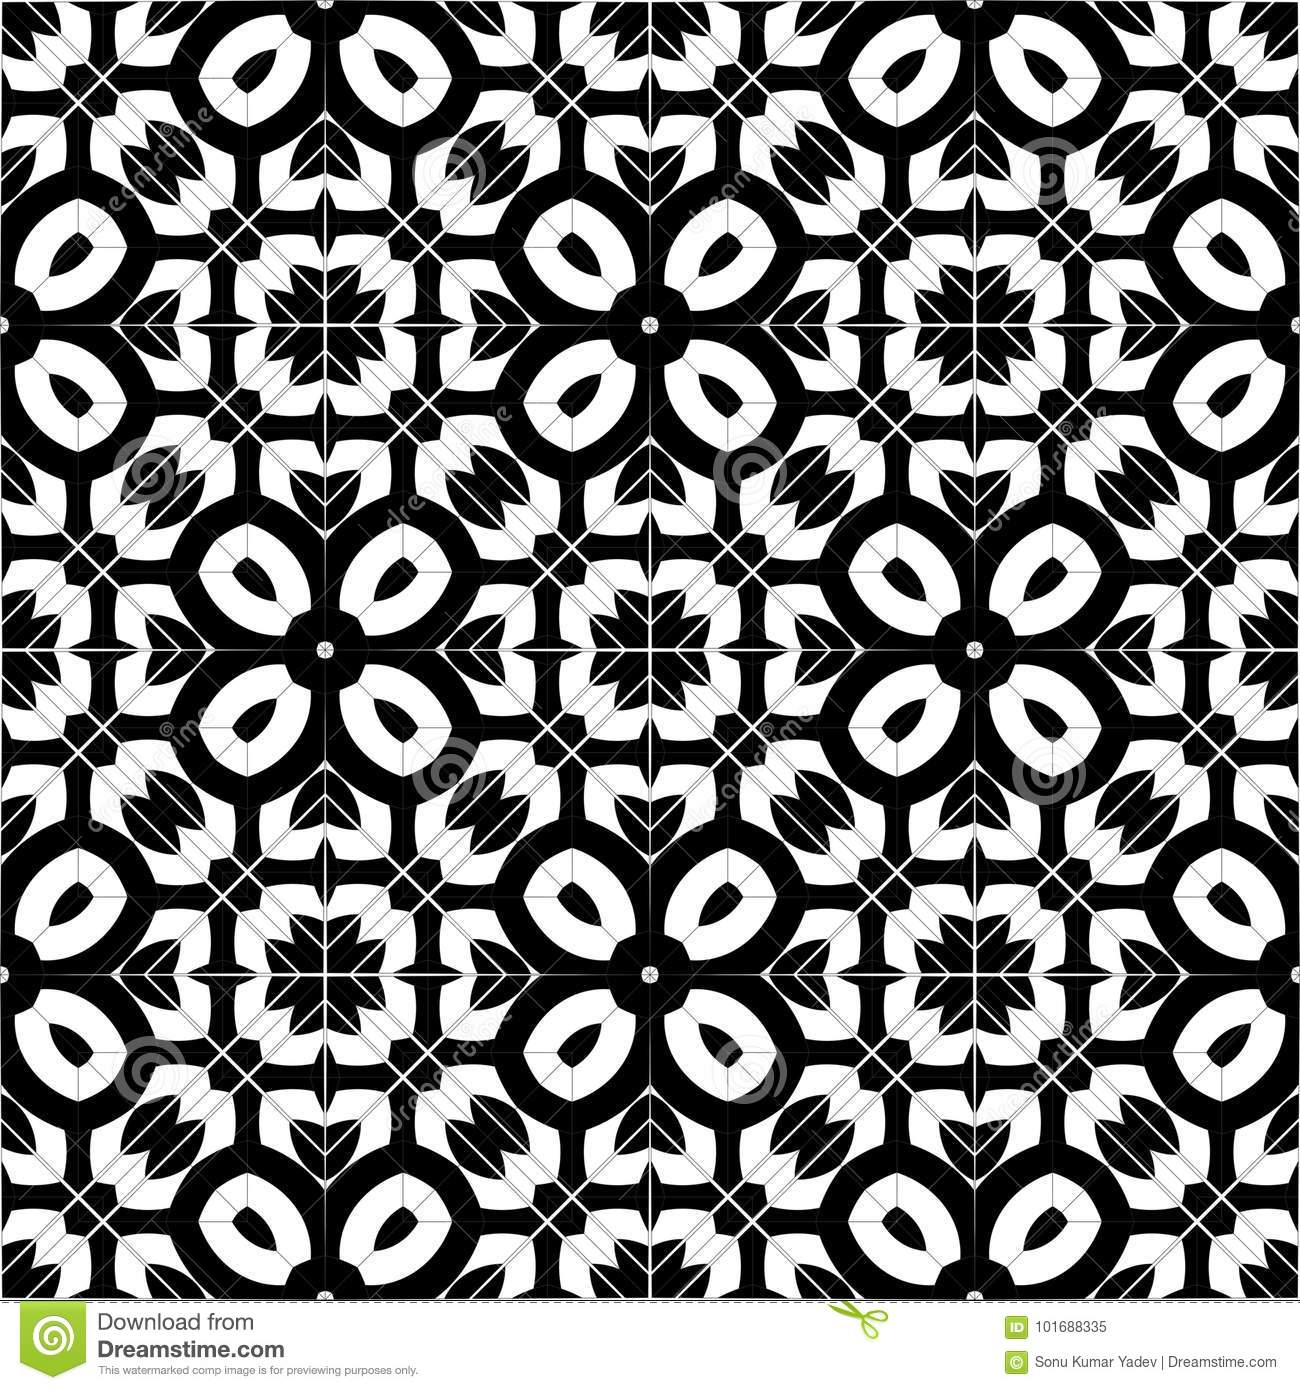 Abstract background black and white pattern design isolated vector scroll floral design element symetric pattern in black and white